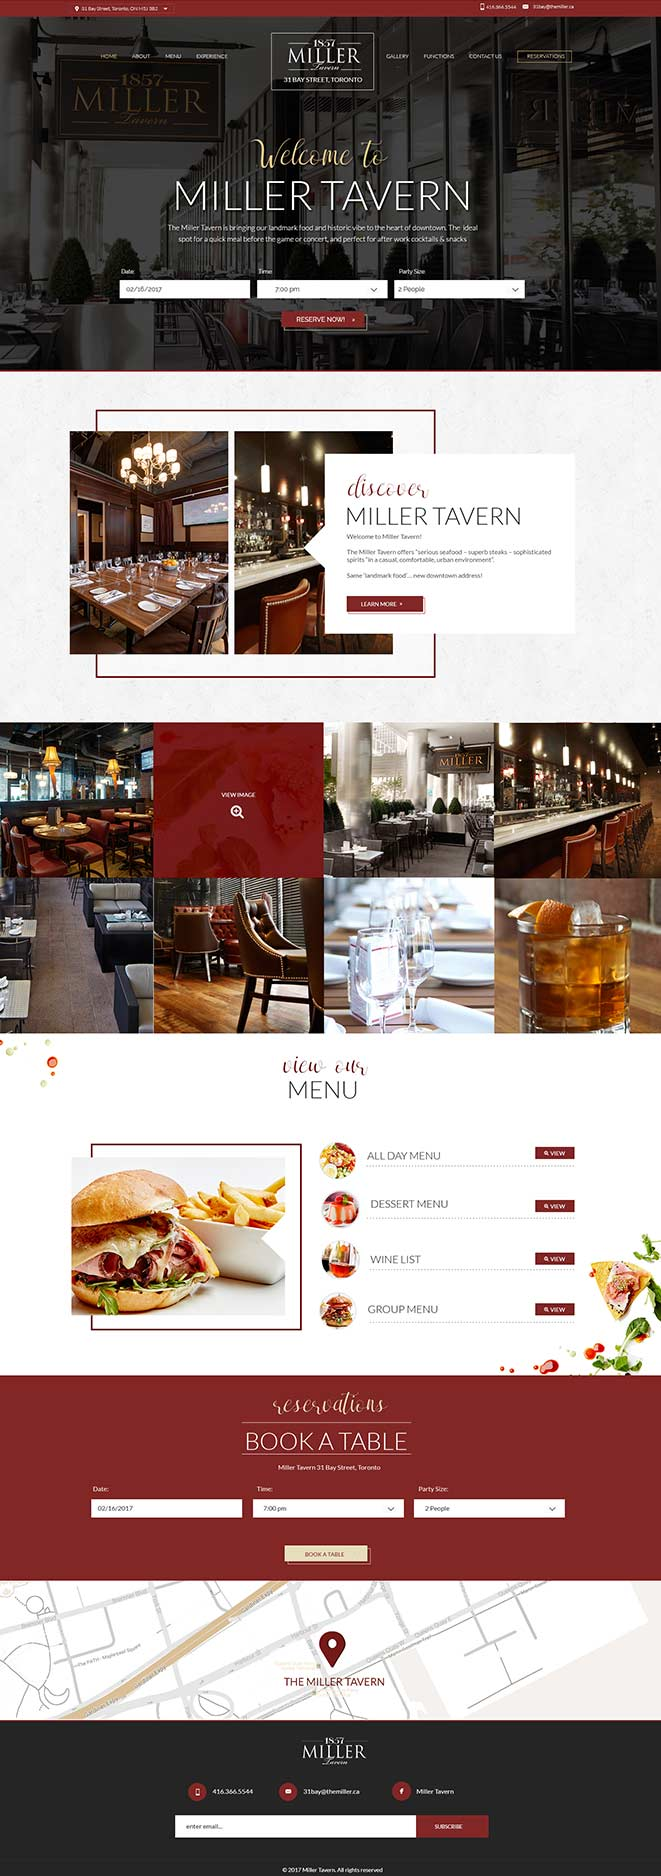 wedsite design the miller tavern restaurant